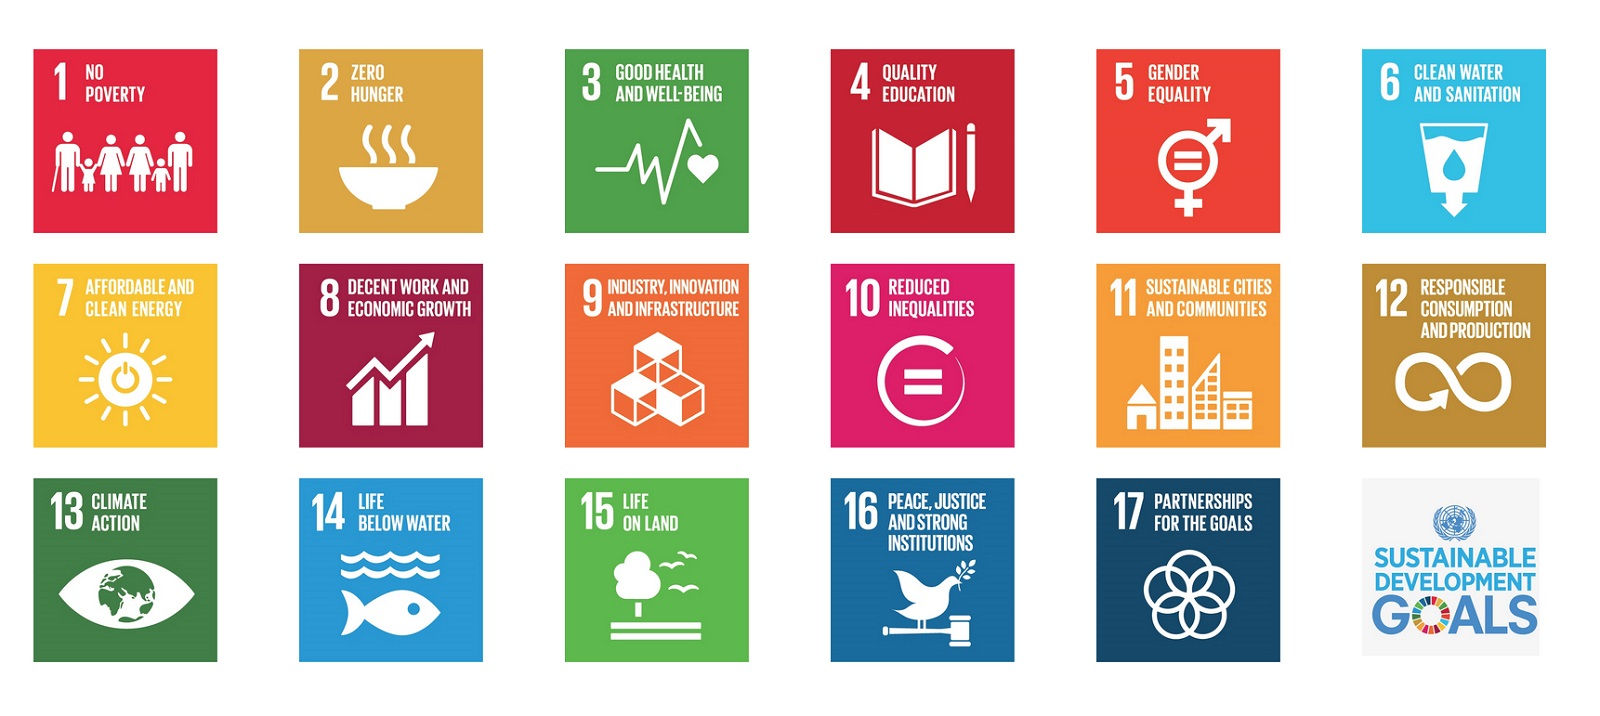 The Impact Of Millenium Development Goals (Mdgs) On The Standard Of Living Of Rural Dwellers